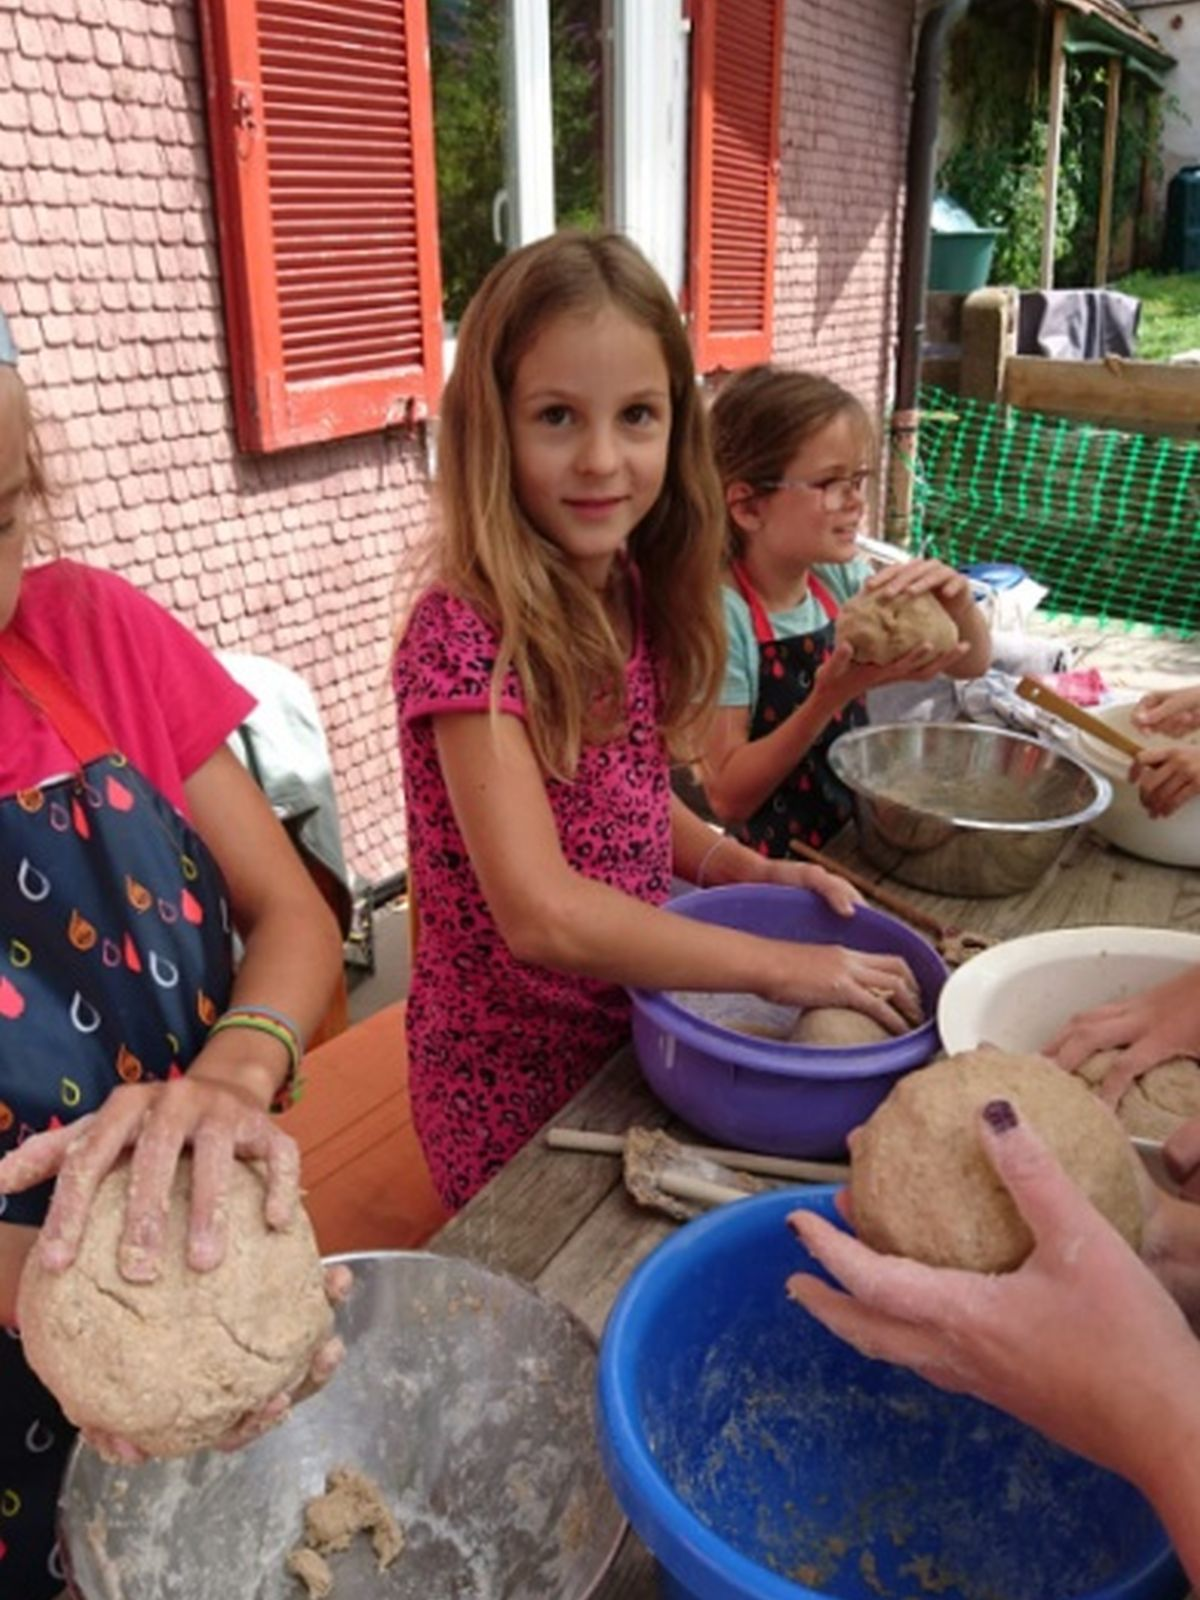 Backen im Backhaus